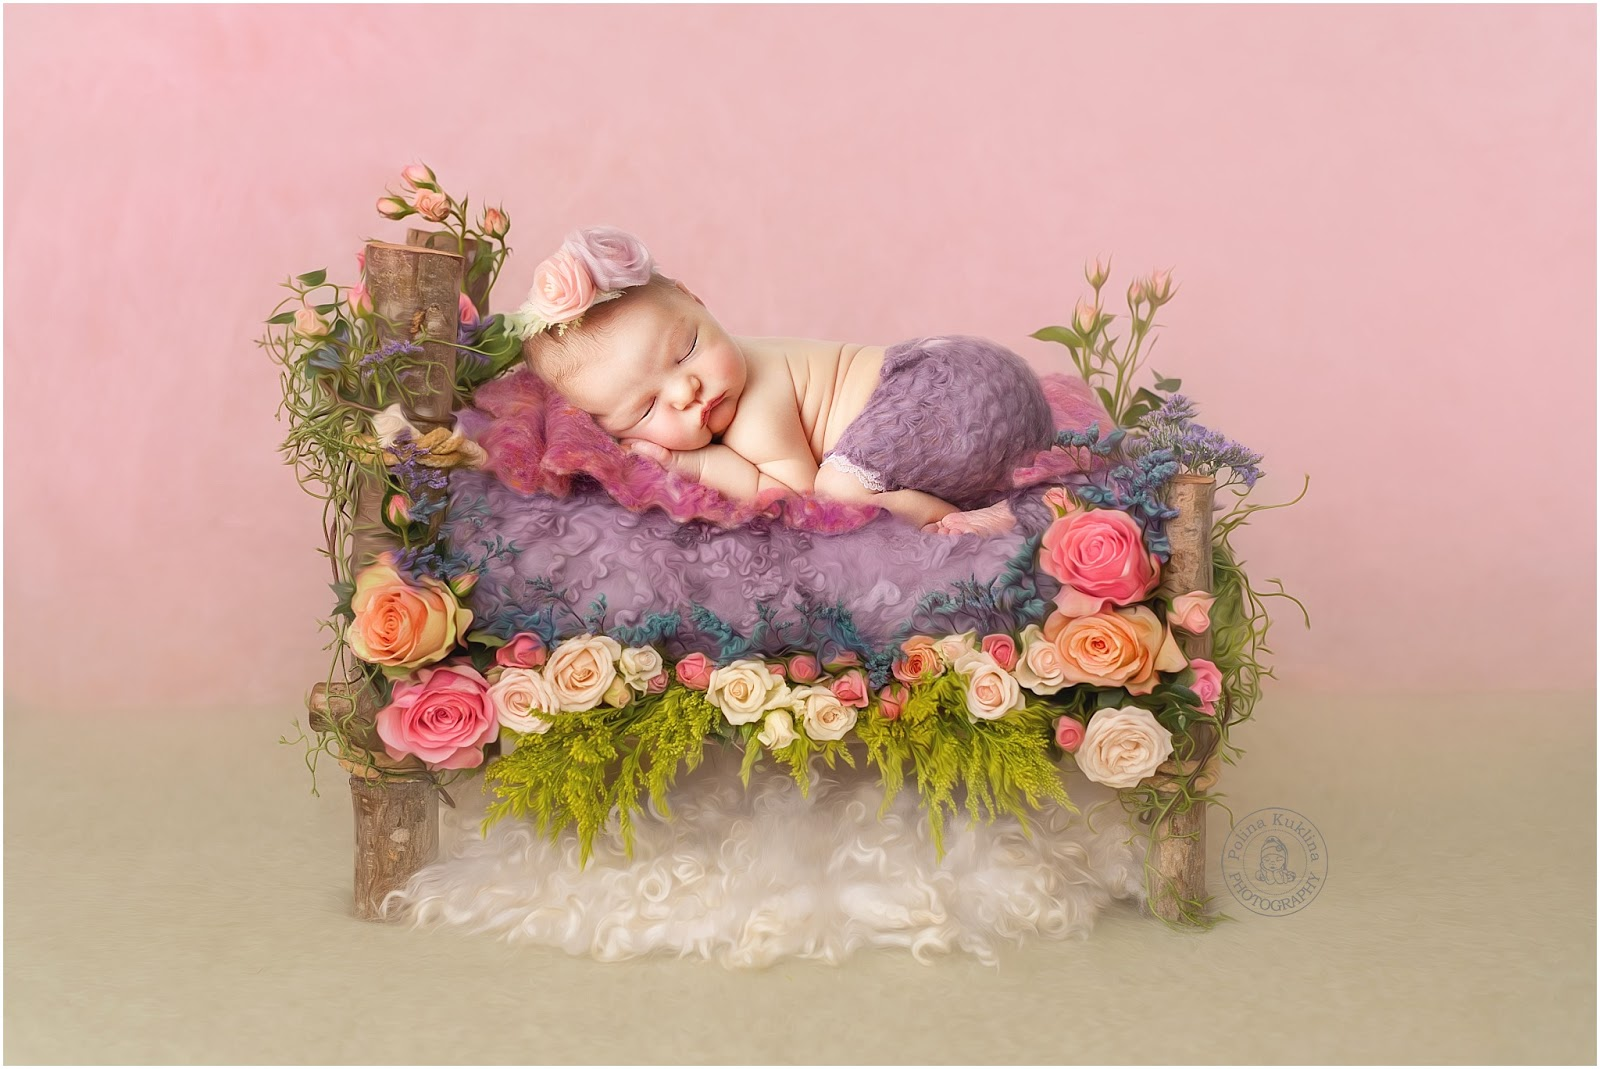 Newborn photo of a baby in a purple diaper with a flower headband on top of